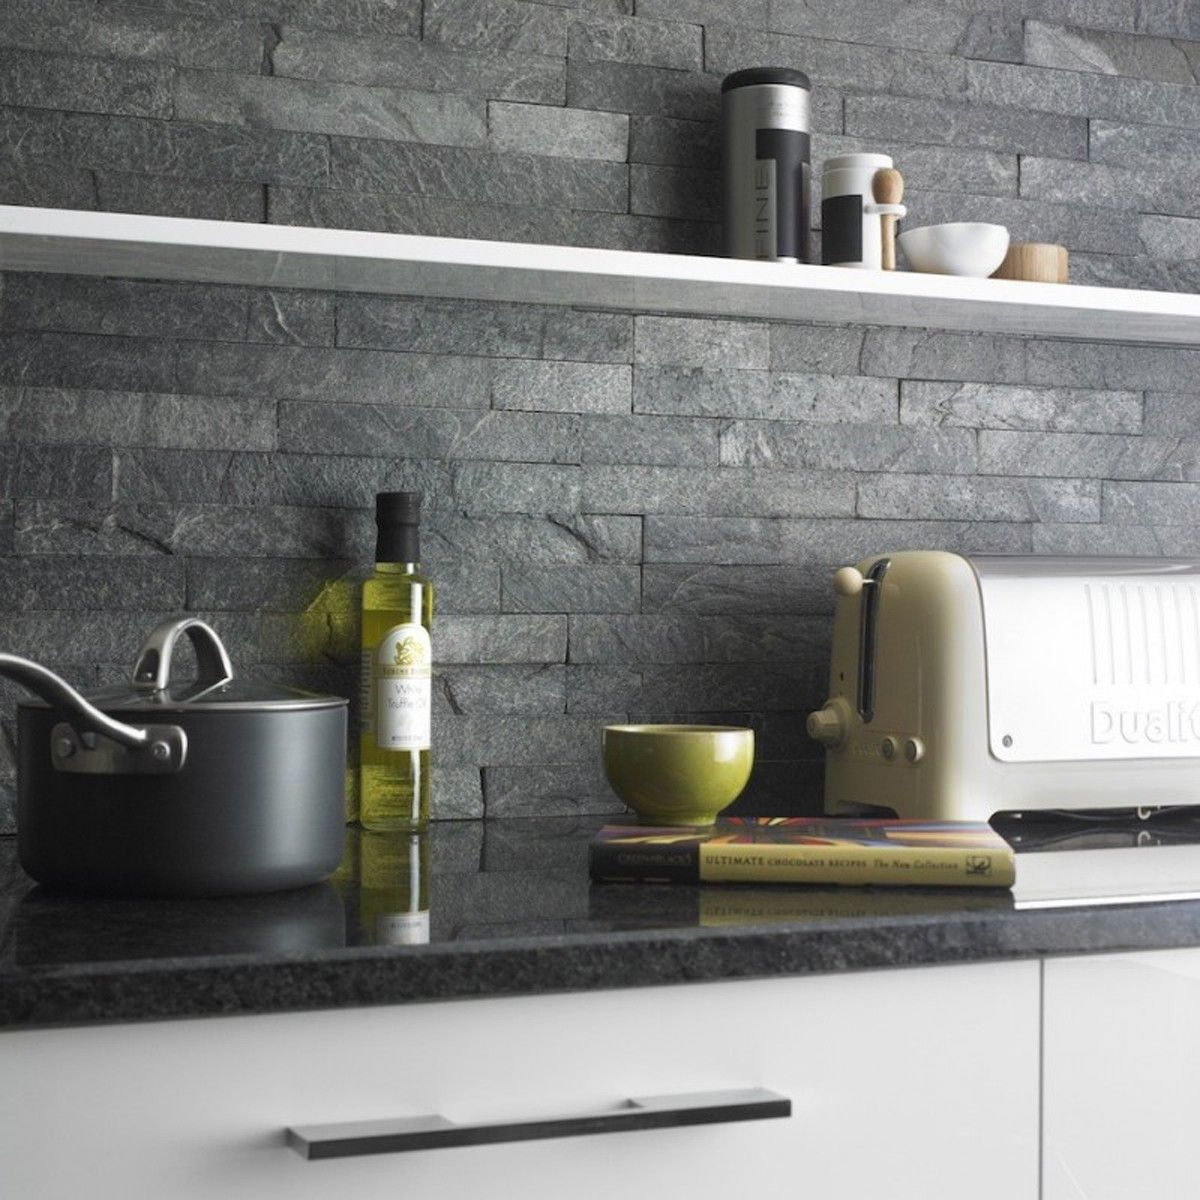 Black Slate Kitchen Tiles: 36x10 Split Face Black Sparkle Kitchen Wall Tiles